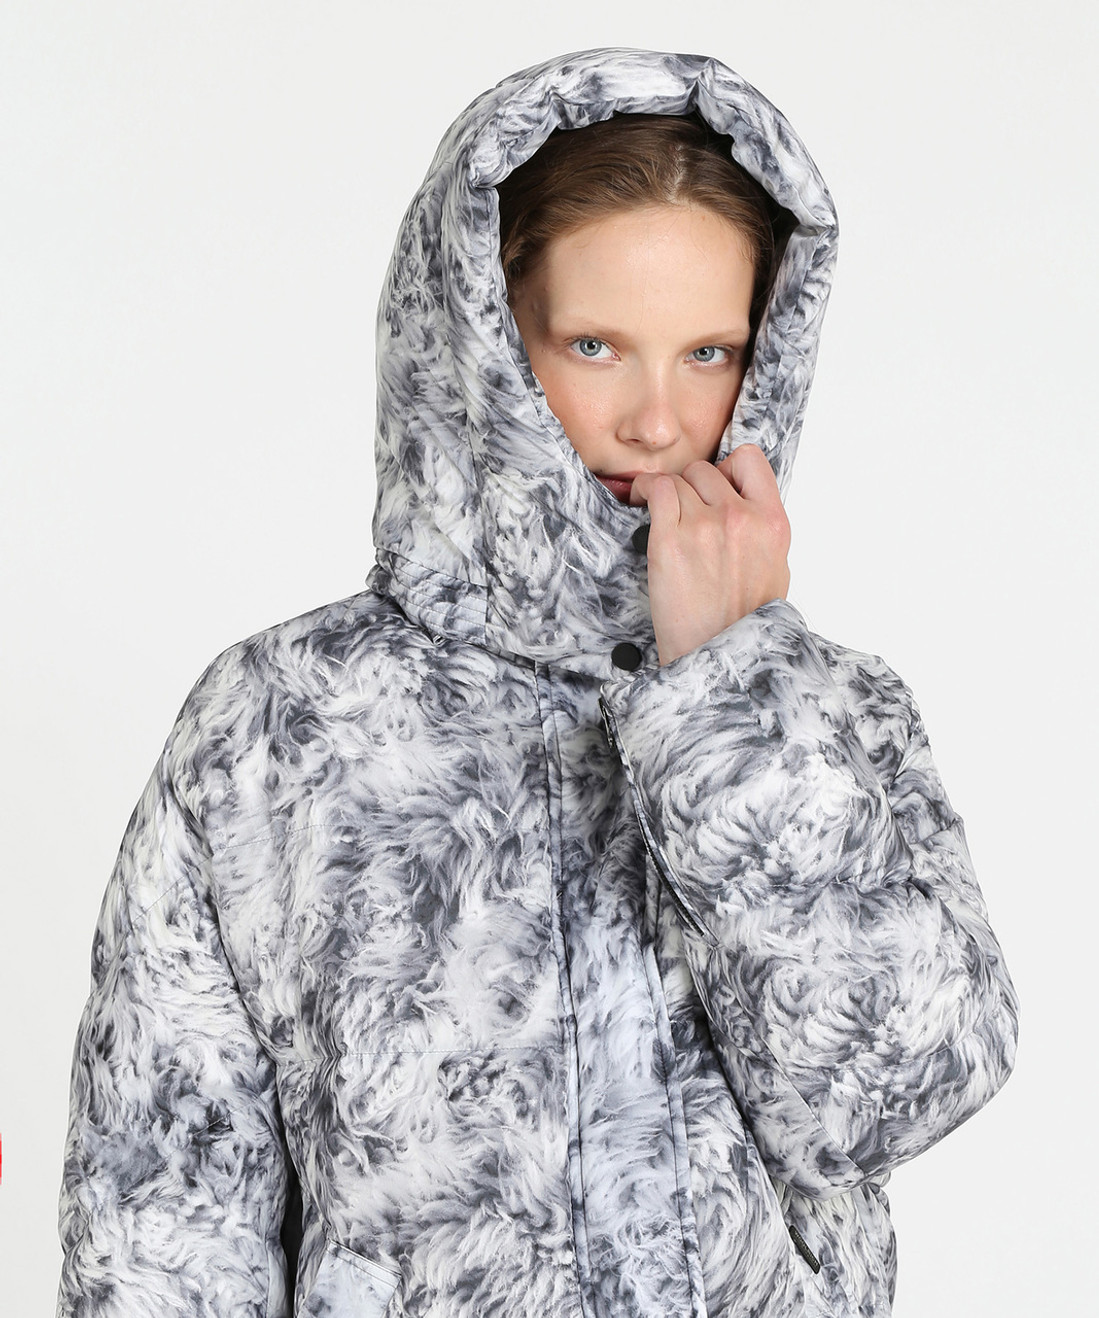 Women's Printed Aurora Puffy Down Coat - John Rich & Bros.